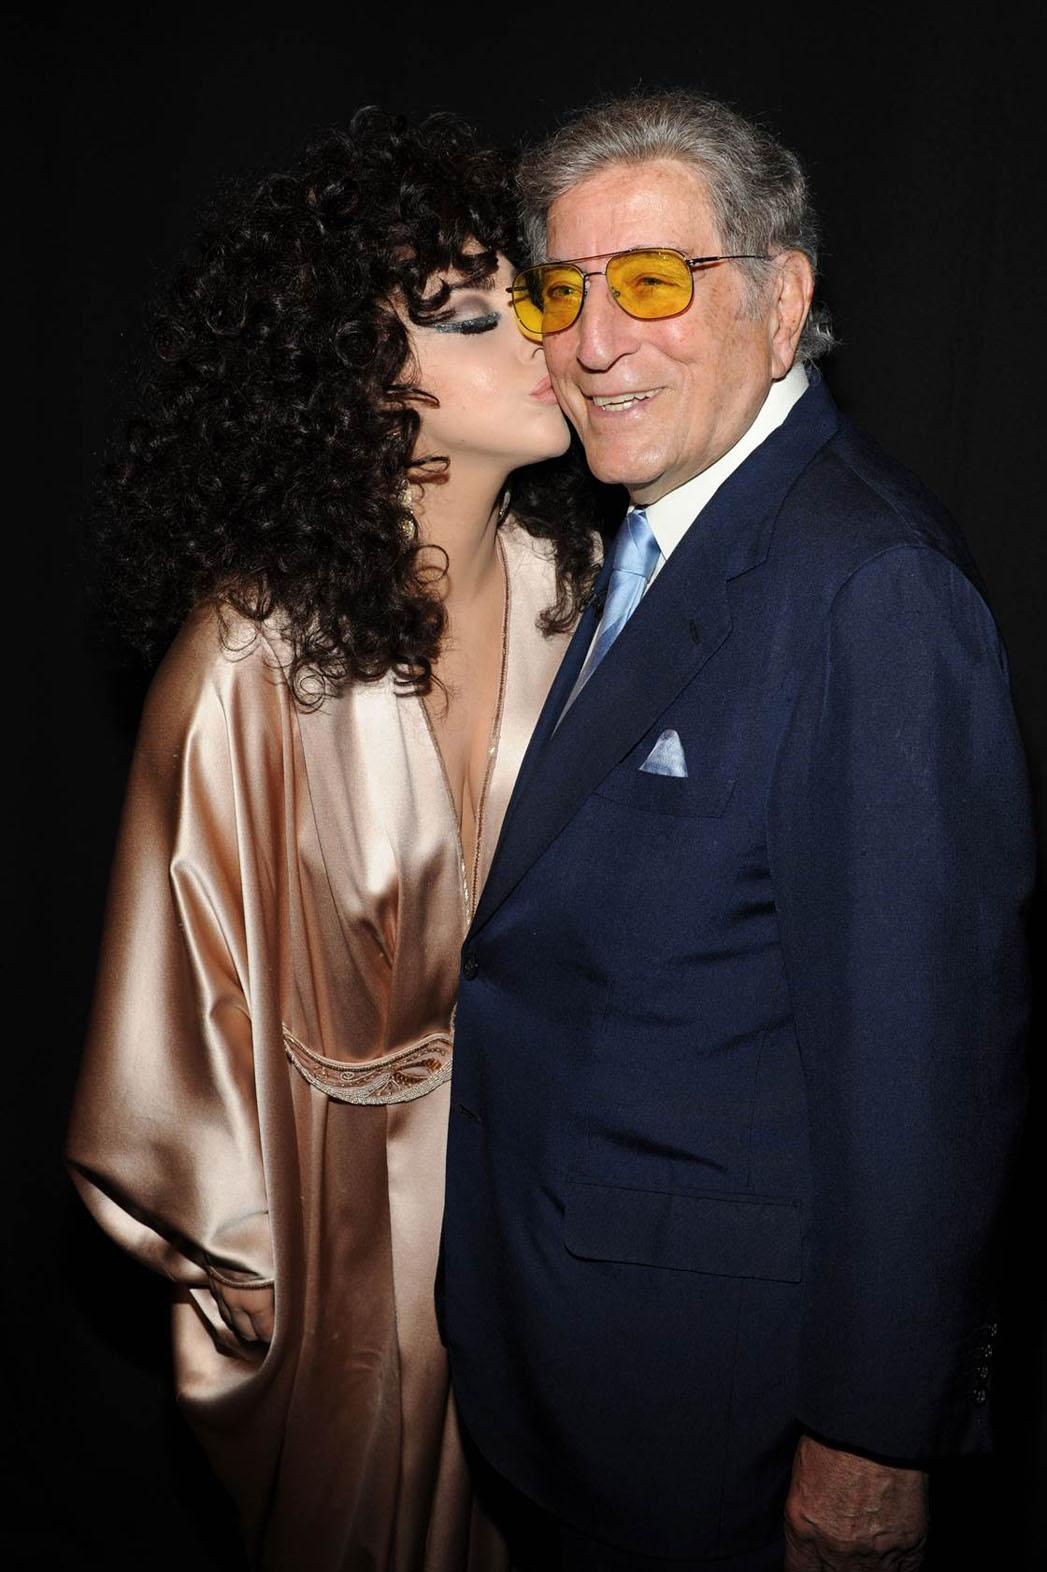 Tony Bennett and Lady Gaga Take It to the Classroom